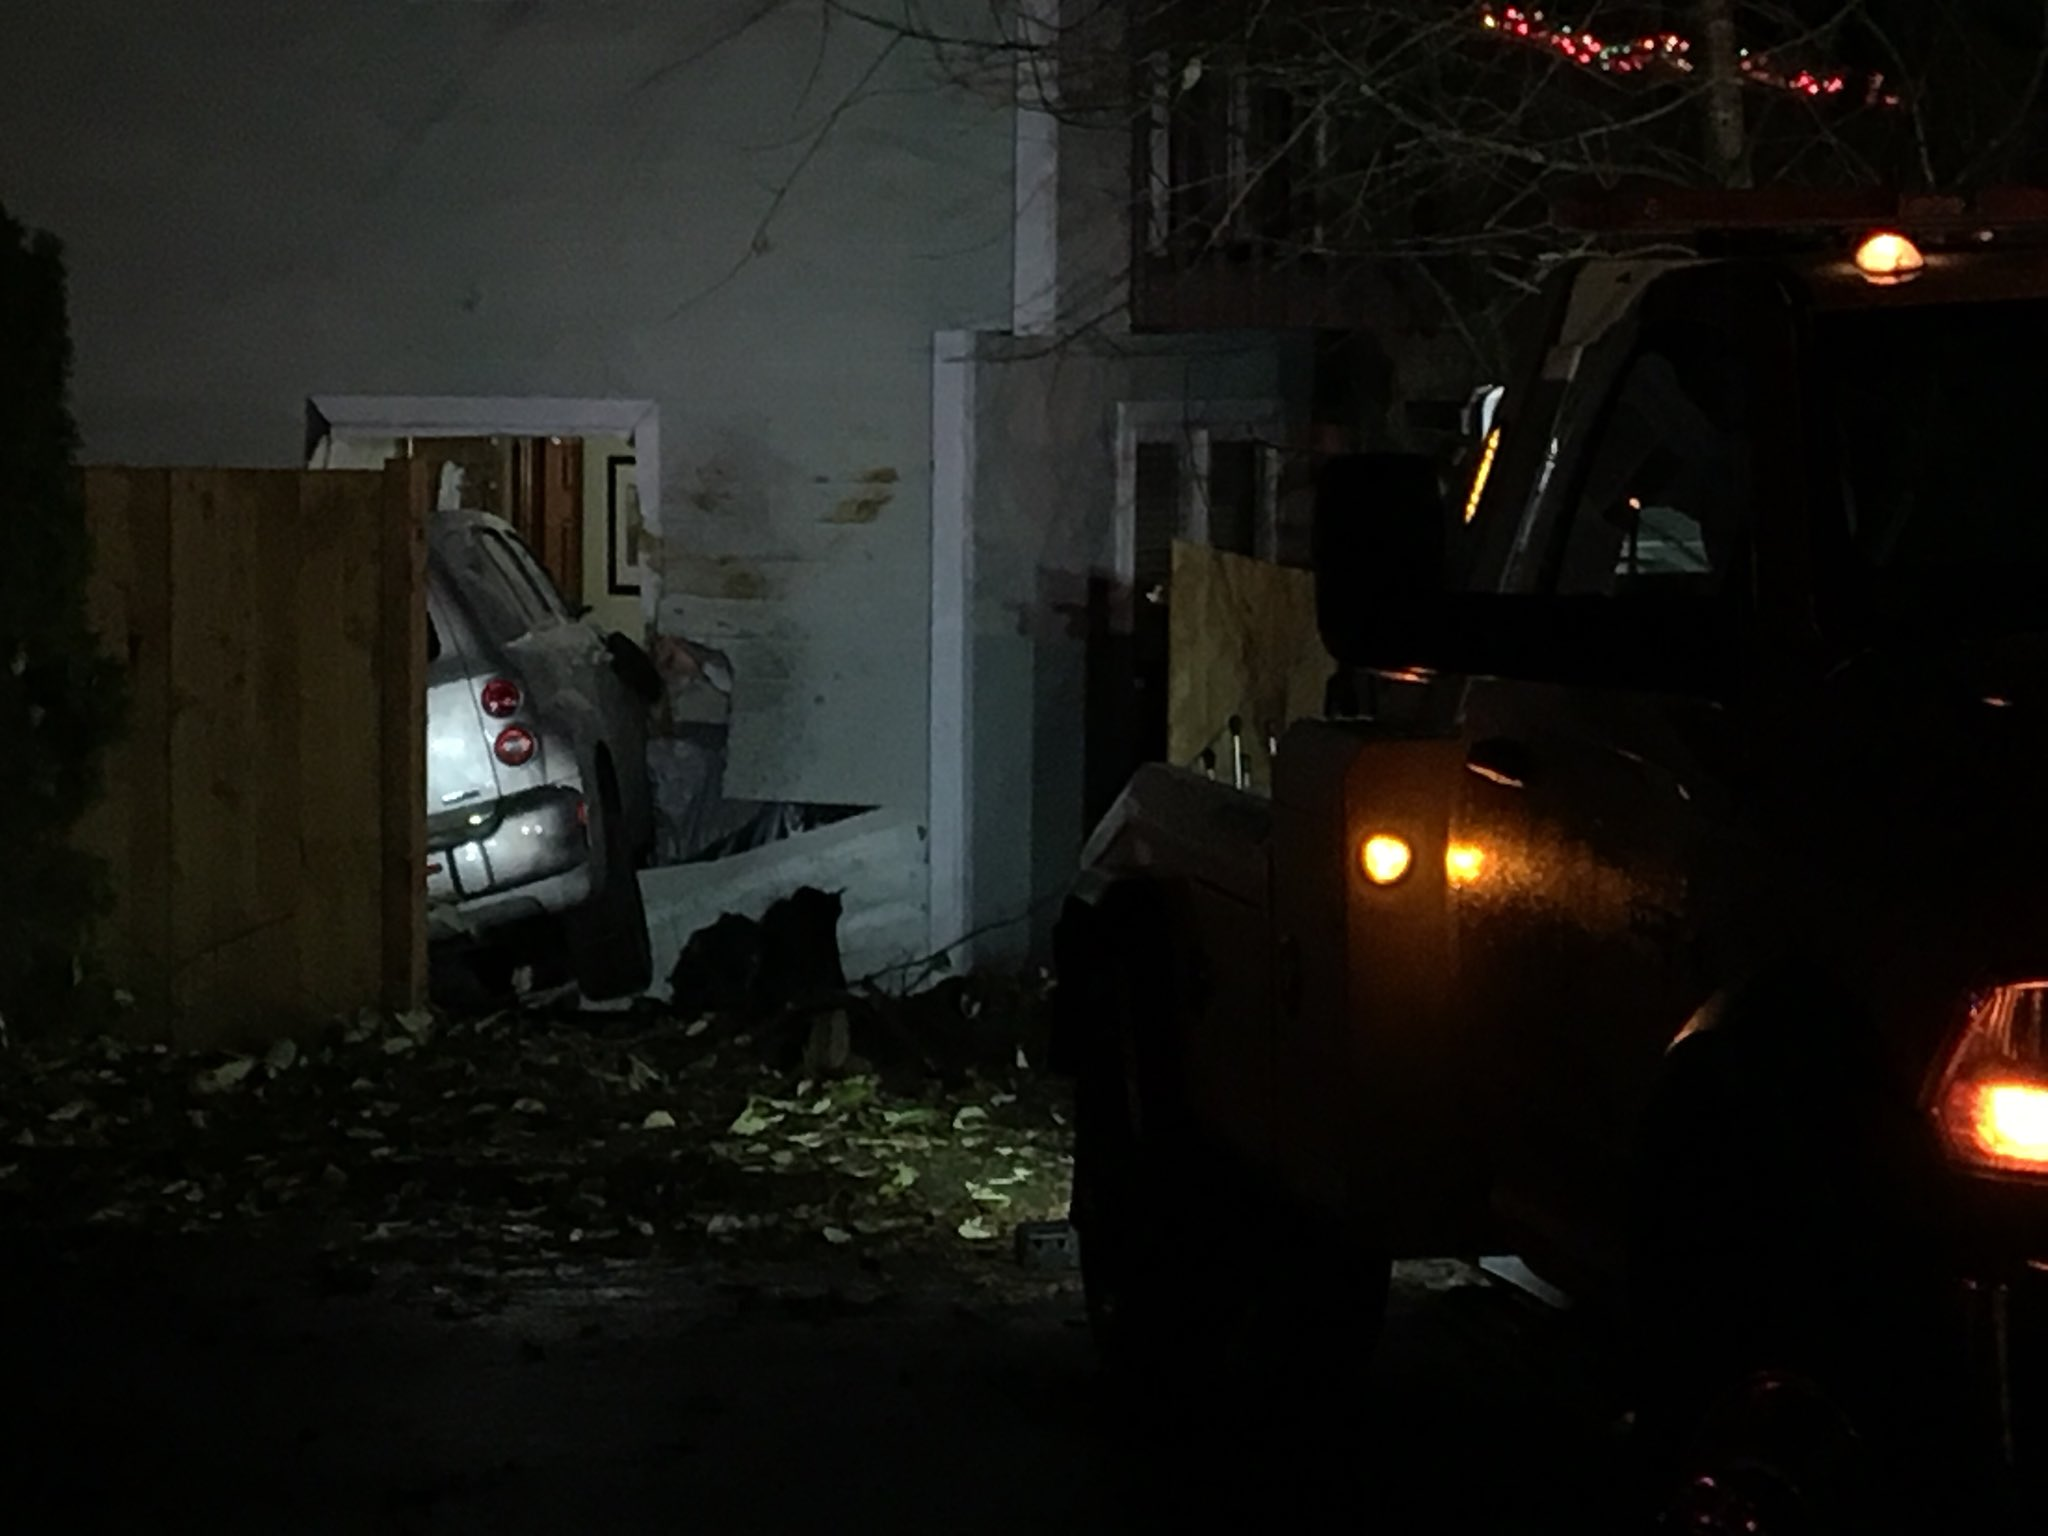 A car with two adults and a child crashed through a wall of a home in Federal Way overnight, injuring a woman in the bed on the other side. (Photo credit: Josh Morgan)<p></p>